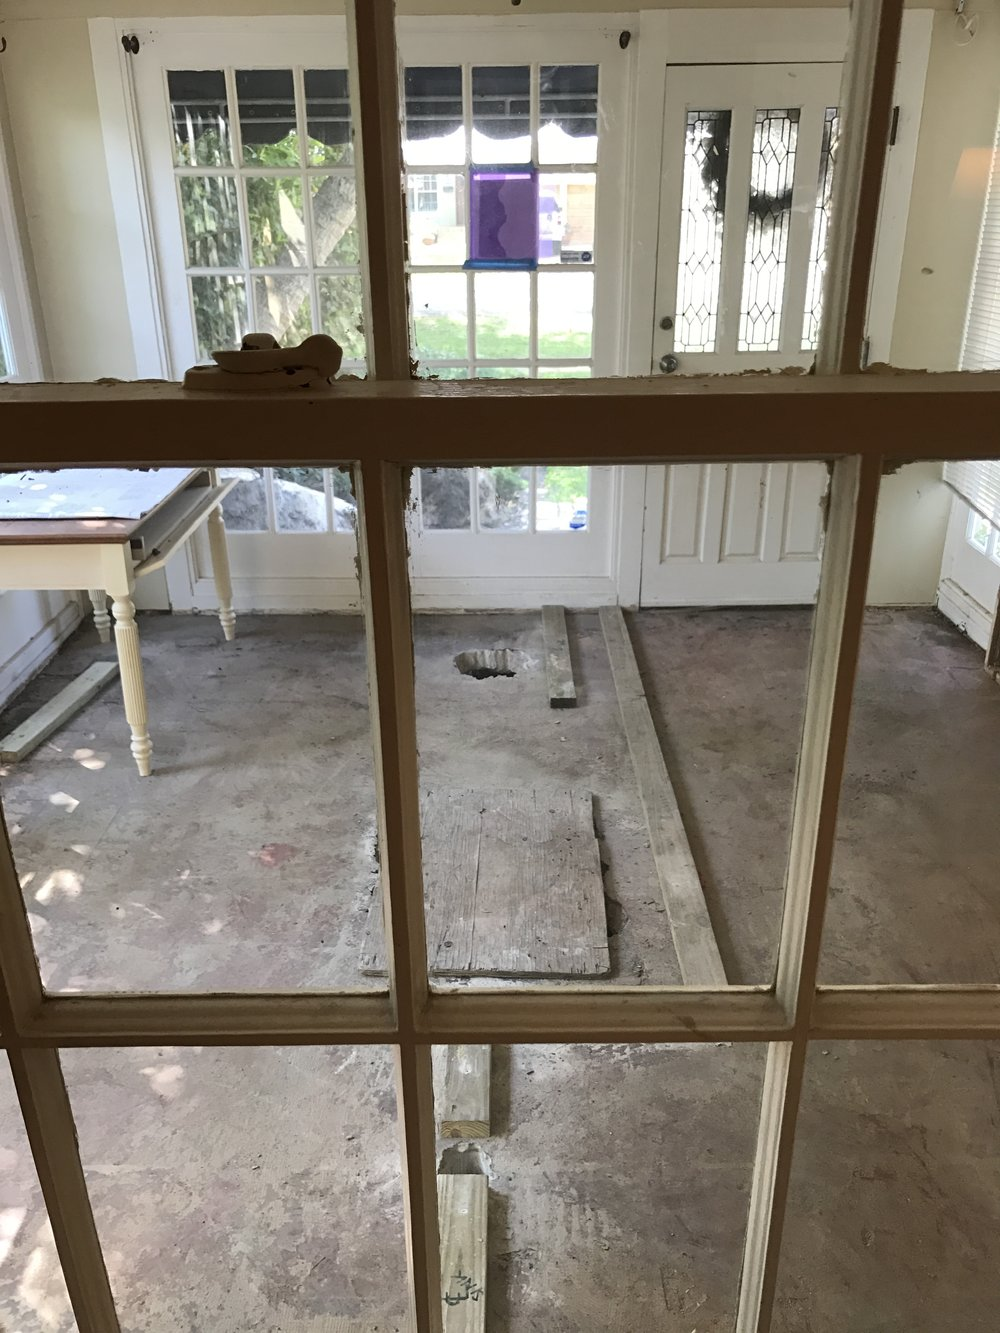 This is the sunroom space that we tuned into the master bathroom, master closet and entry way to the house.  The wood planks on the floor are the outline of the master bath for reference,,,